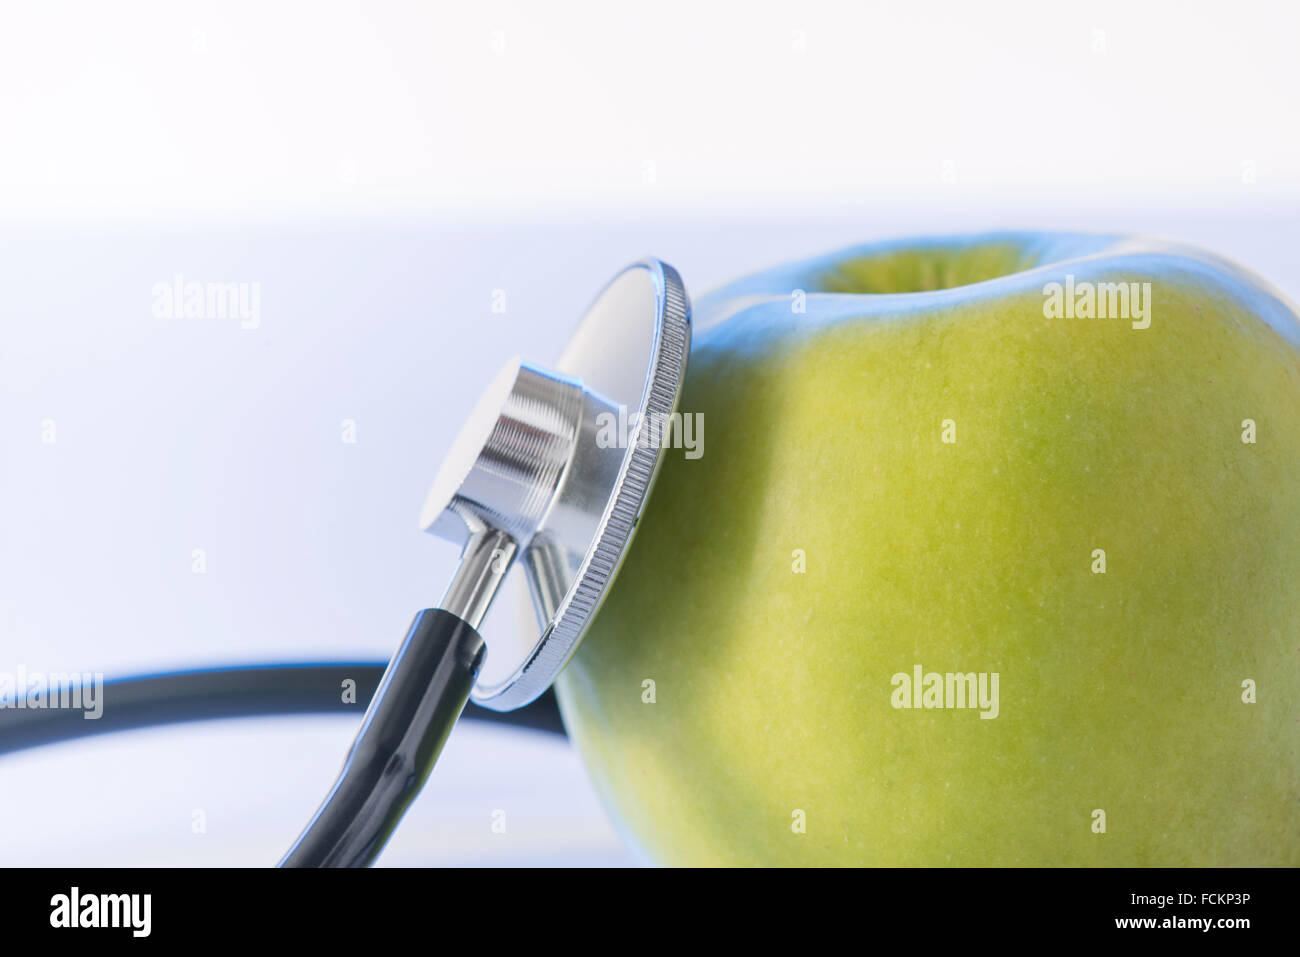 Green apple and stethoscope. - Stock Image